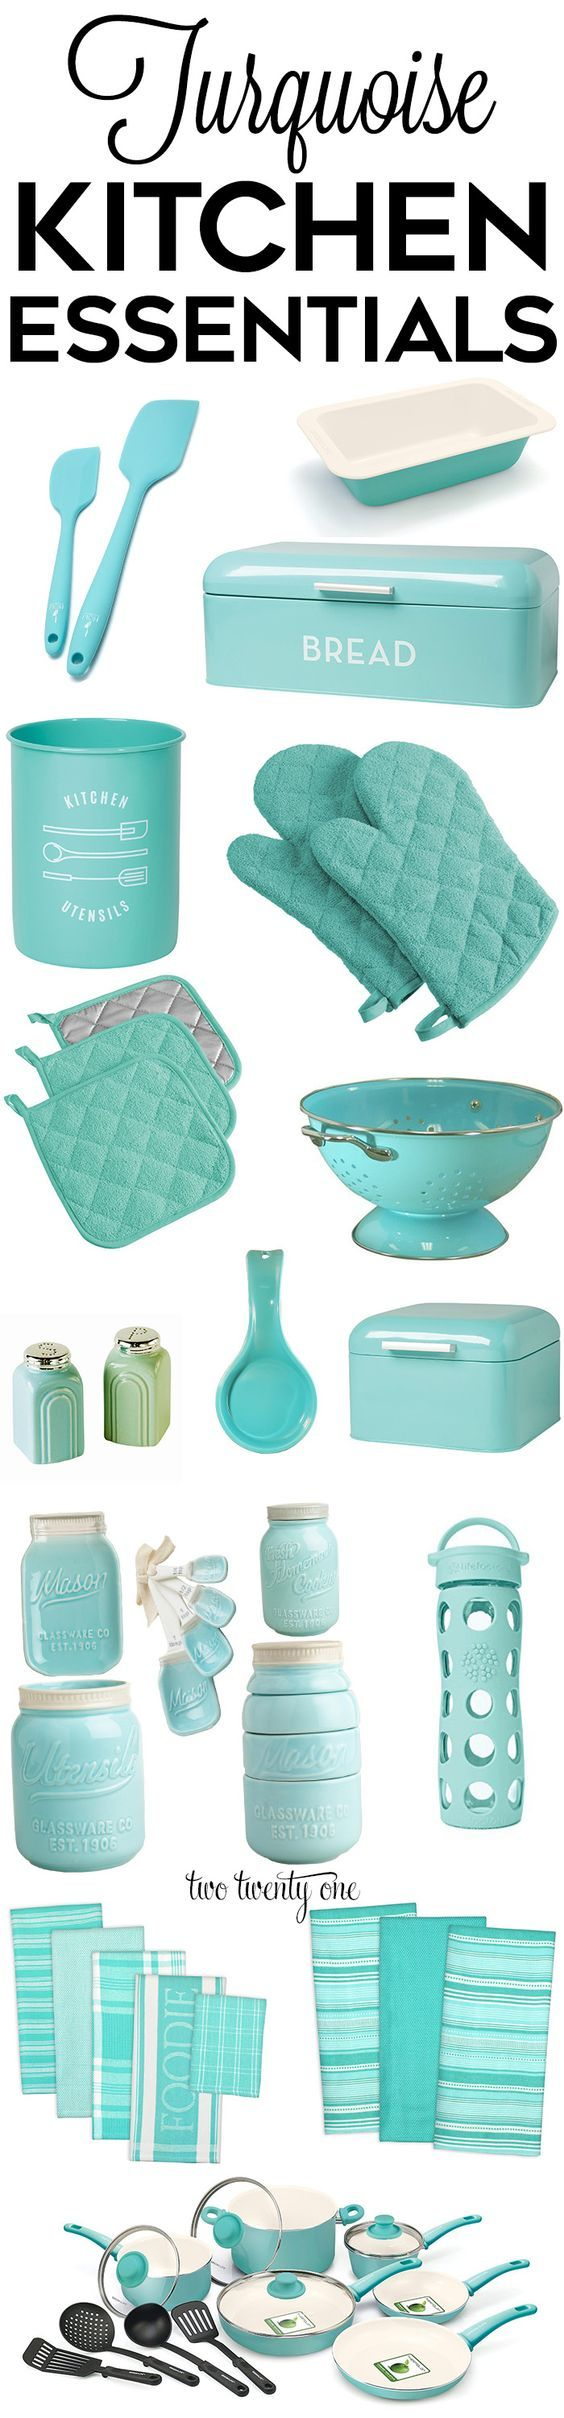 Turquoise kitchen decor, appliances, and gadgets!